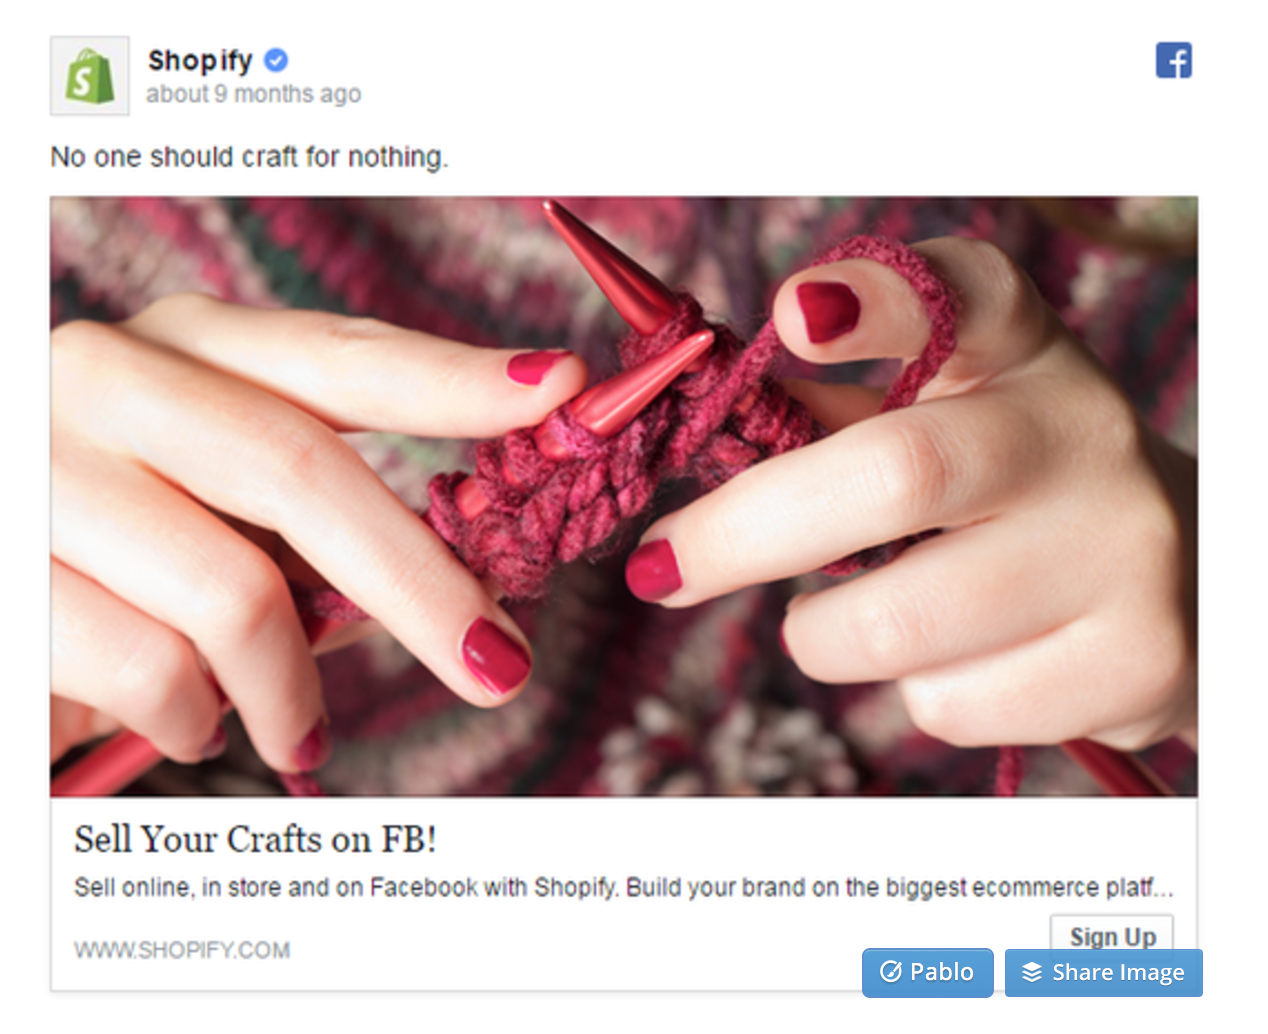 Facebook Ads Shopify Sign Up Example